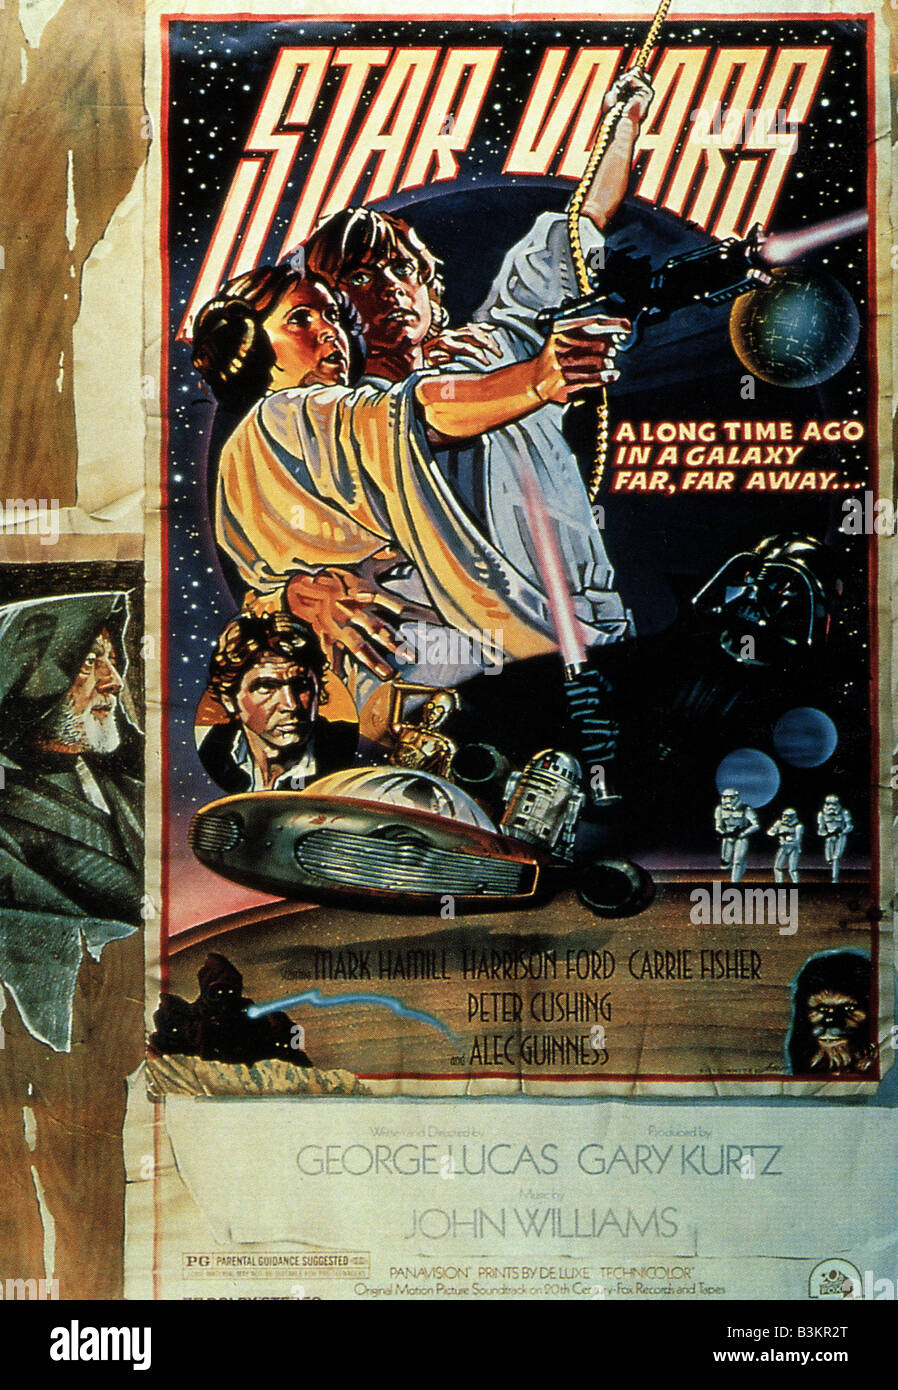 STAR WARS Episode 1 - LA MENACE FANTÔME Affiche pour 1999 film TCF Photo Stock